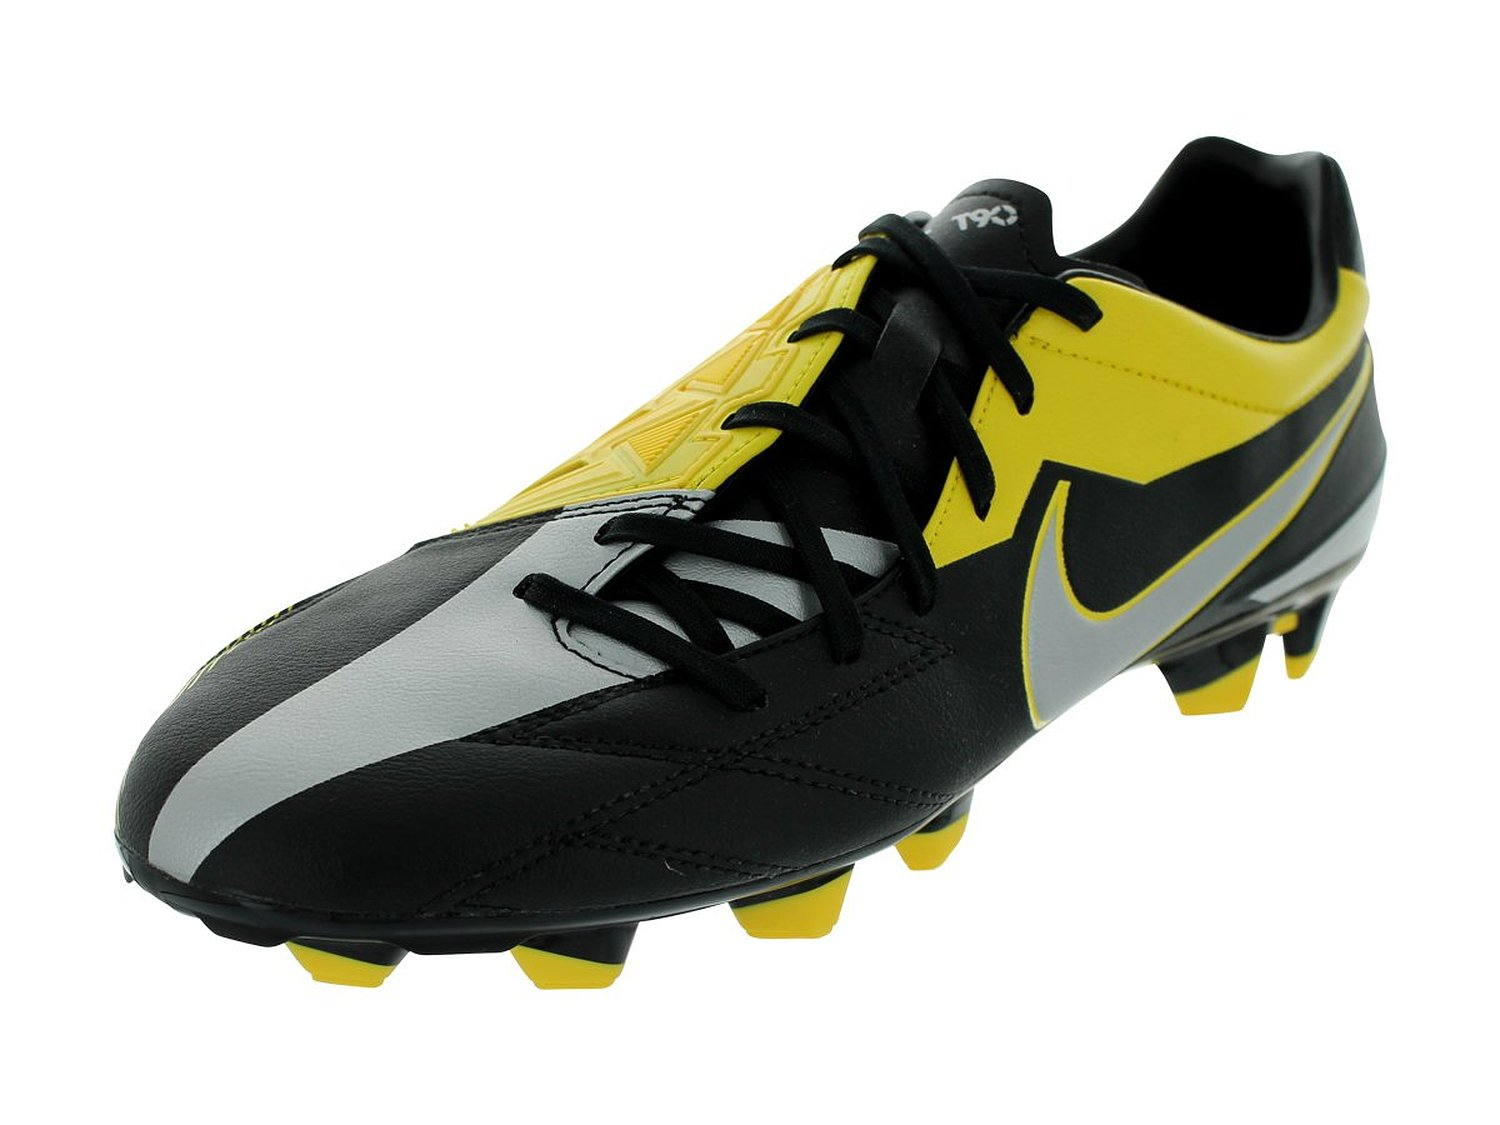 Nike T90 Strike IV FG Black Yellow Silver Mens Soccer Cleats Shoes 472562-007